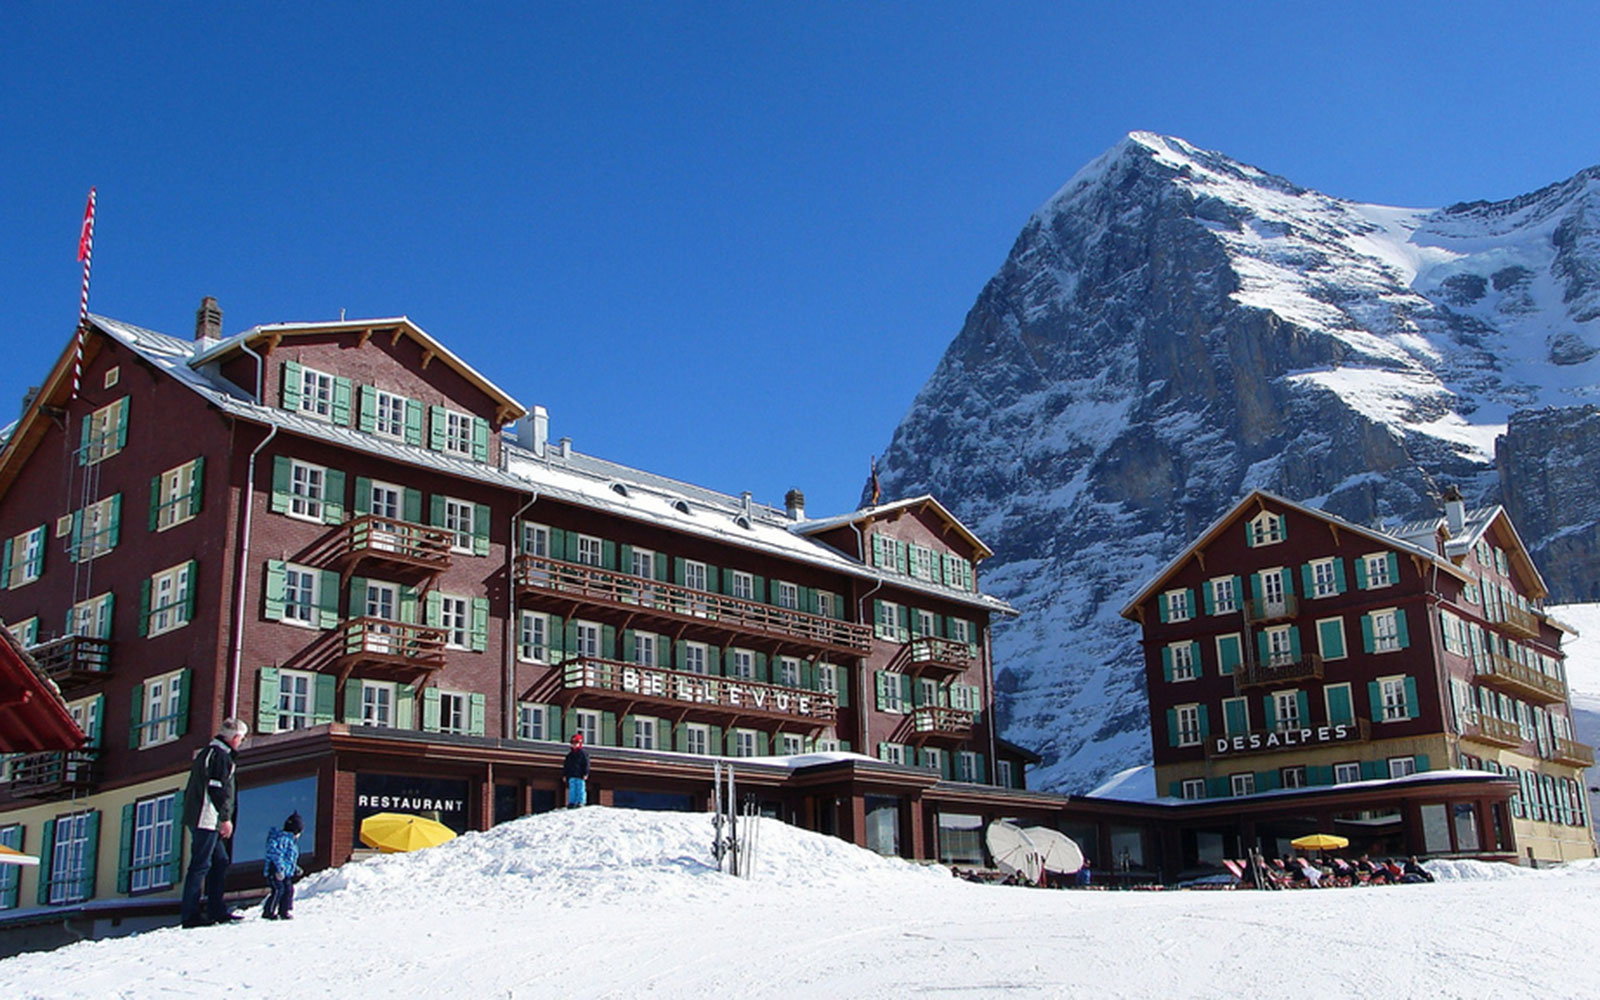 Hotel Bellevue des Alpes in Switzerland